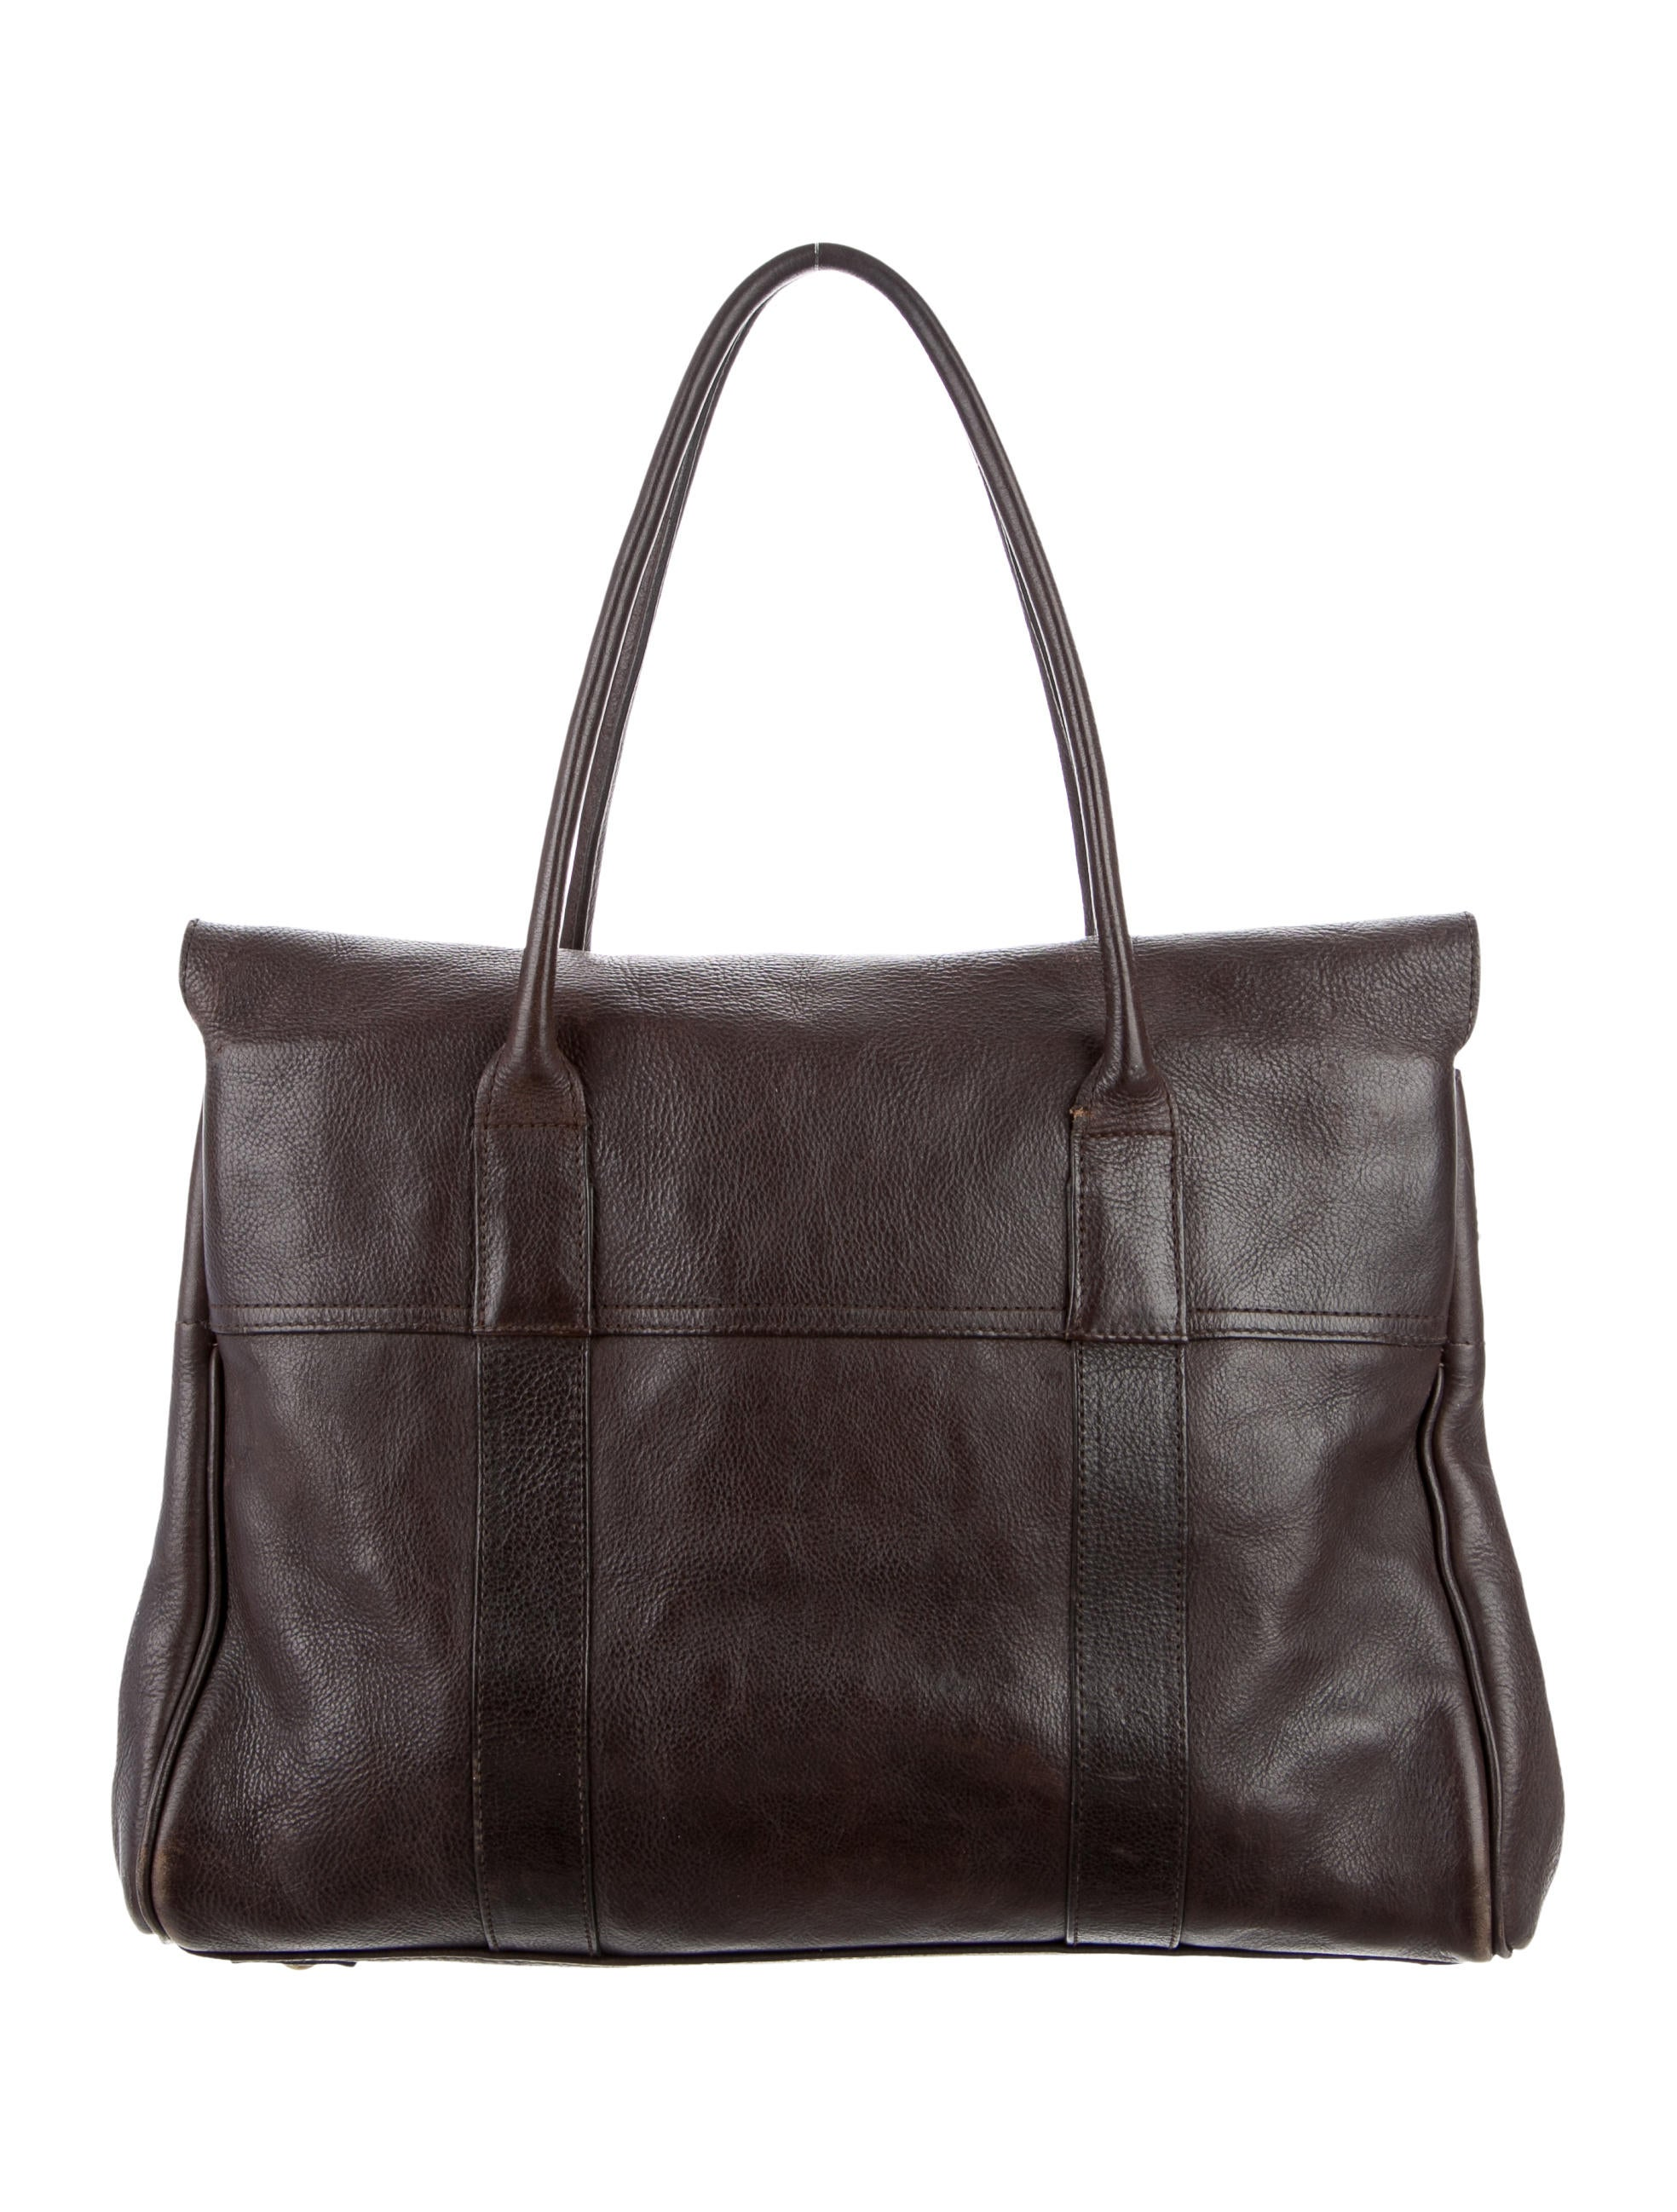 Mulberry leather bayswater bag handbags mul22215 the for The bayswater